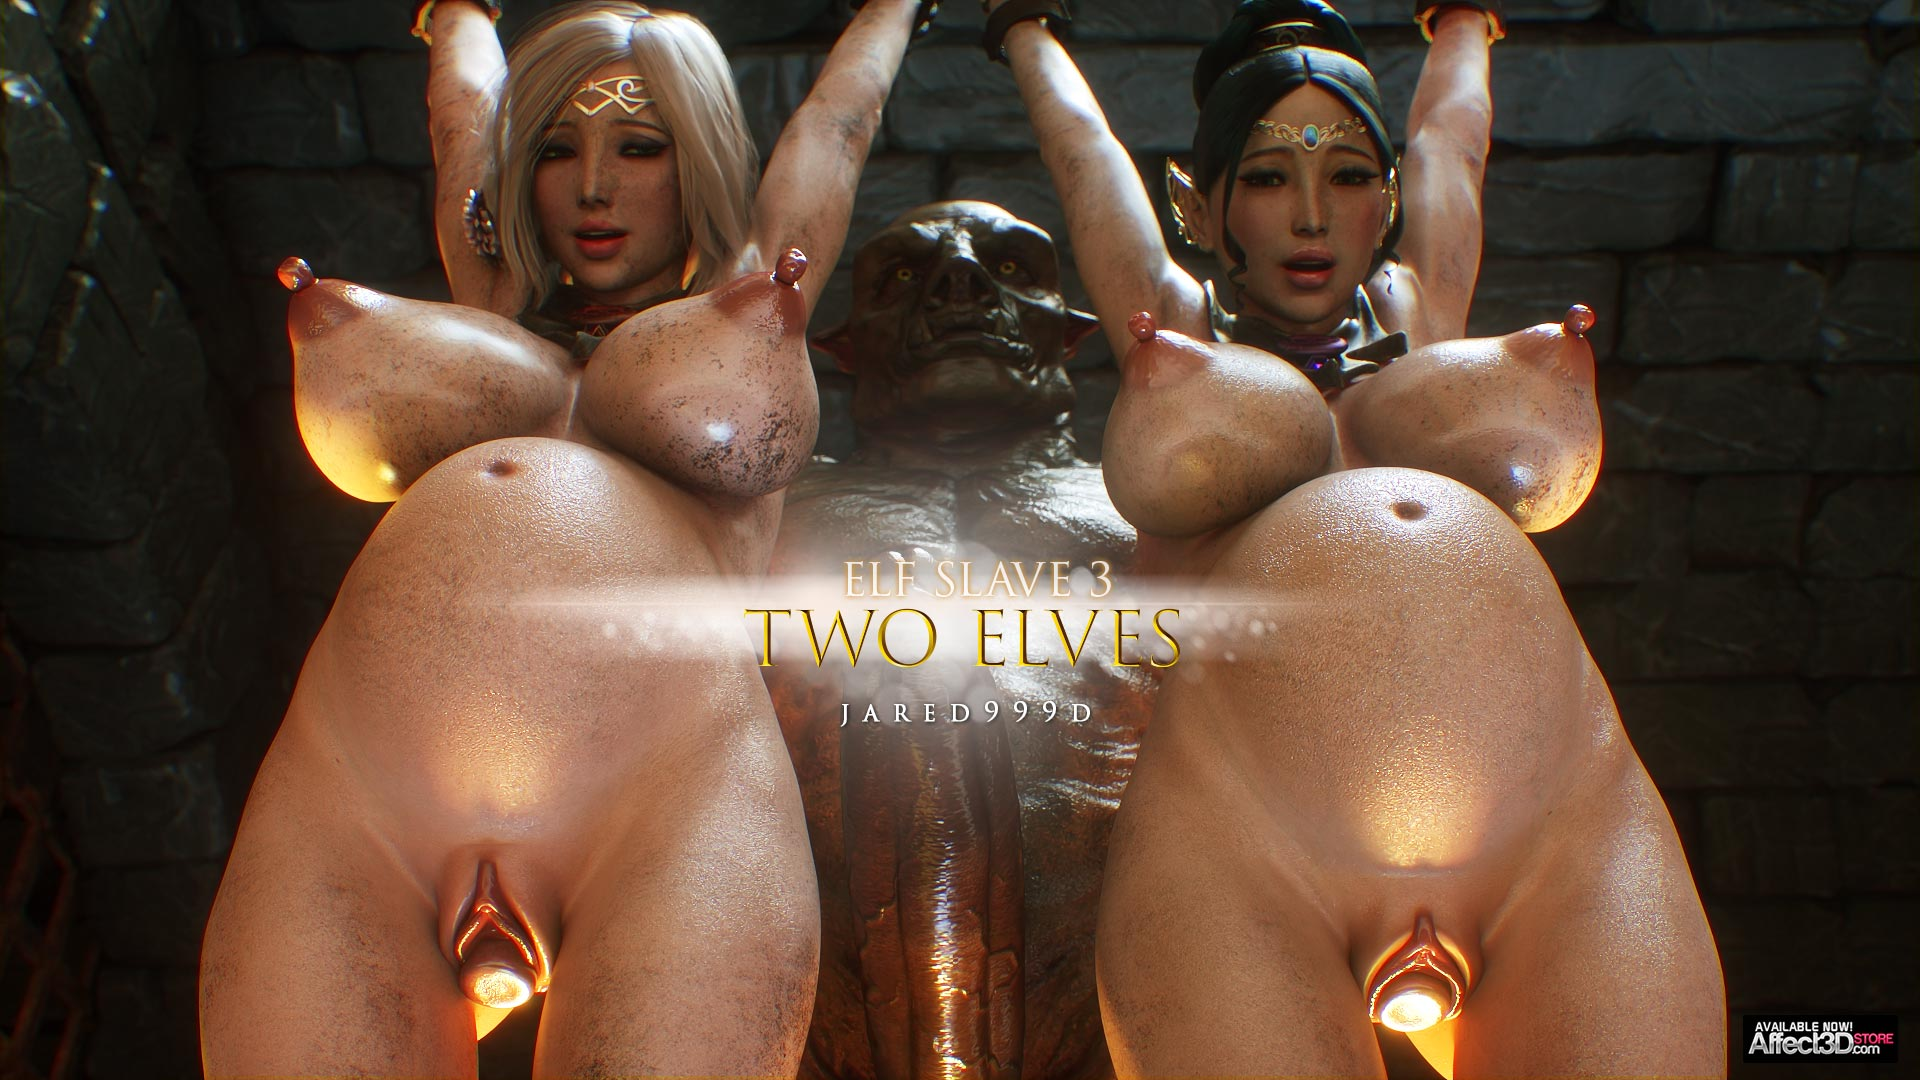 check out the latest from jared999d elf slave two